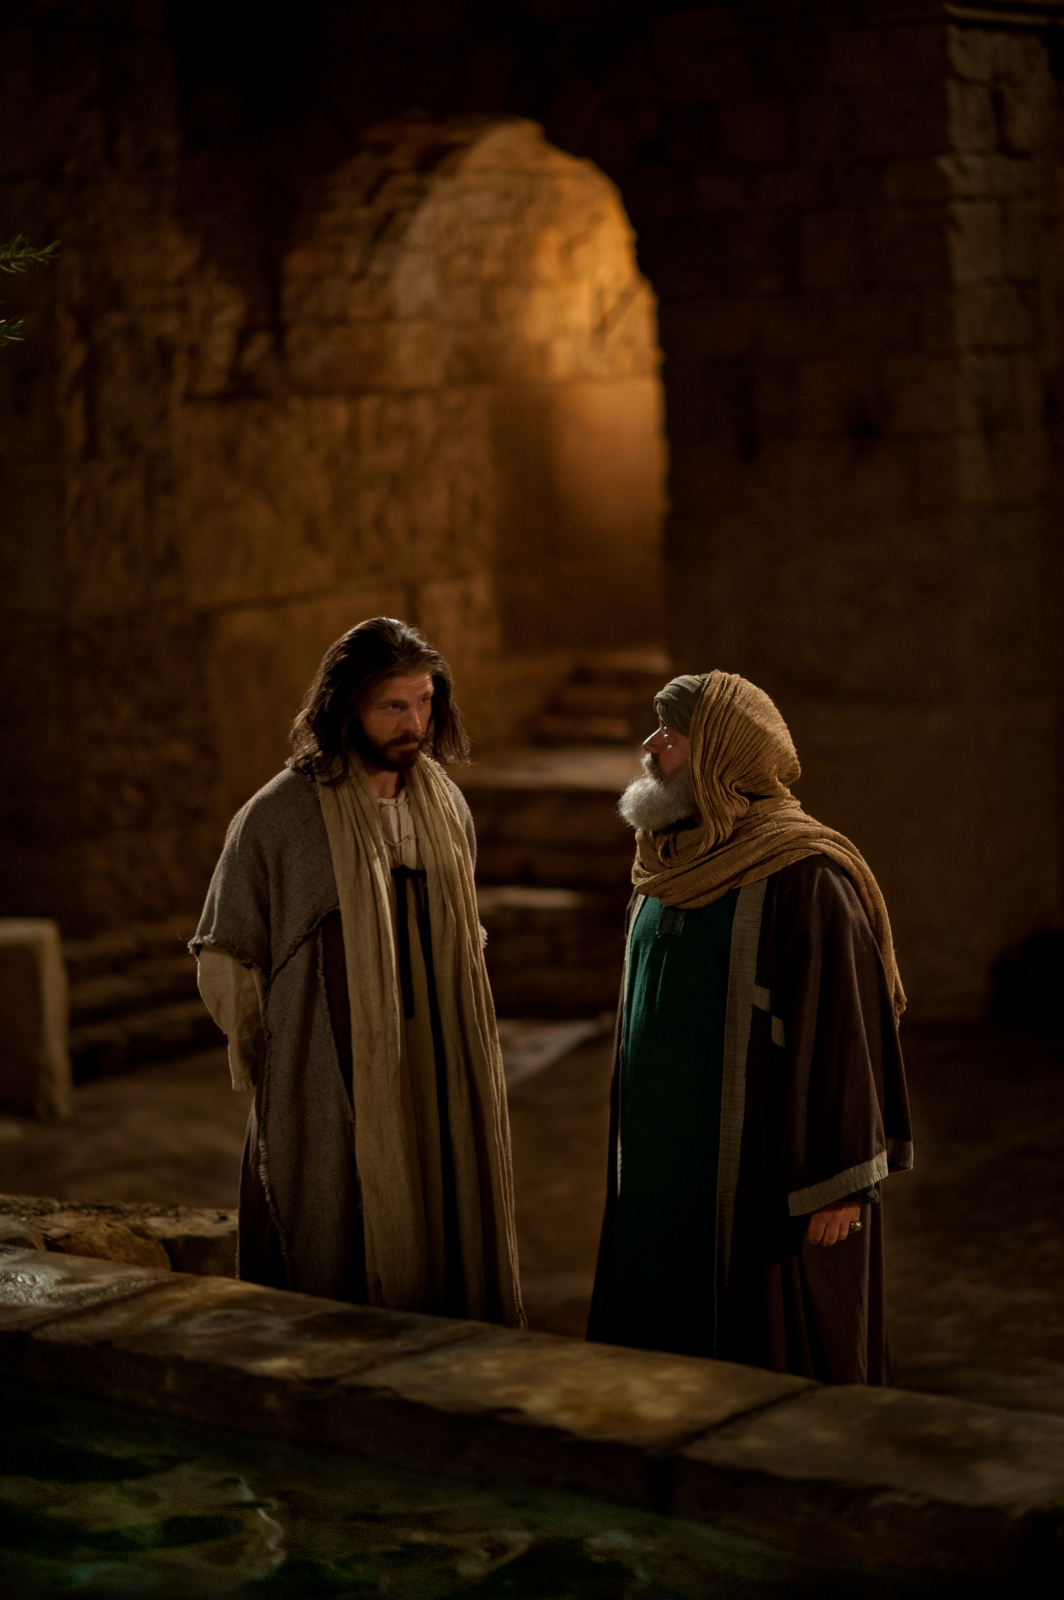 nicodemus and samaritan woman The nicodemus interview (john 3) focuses on water baptism the samaritan woman story (john 4) explains about living water let's dive into our study and learn more about the water of life.